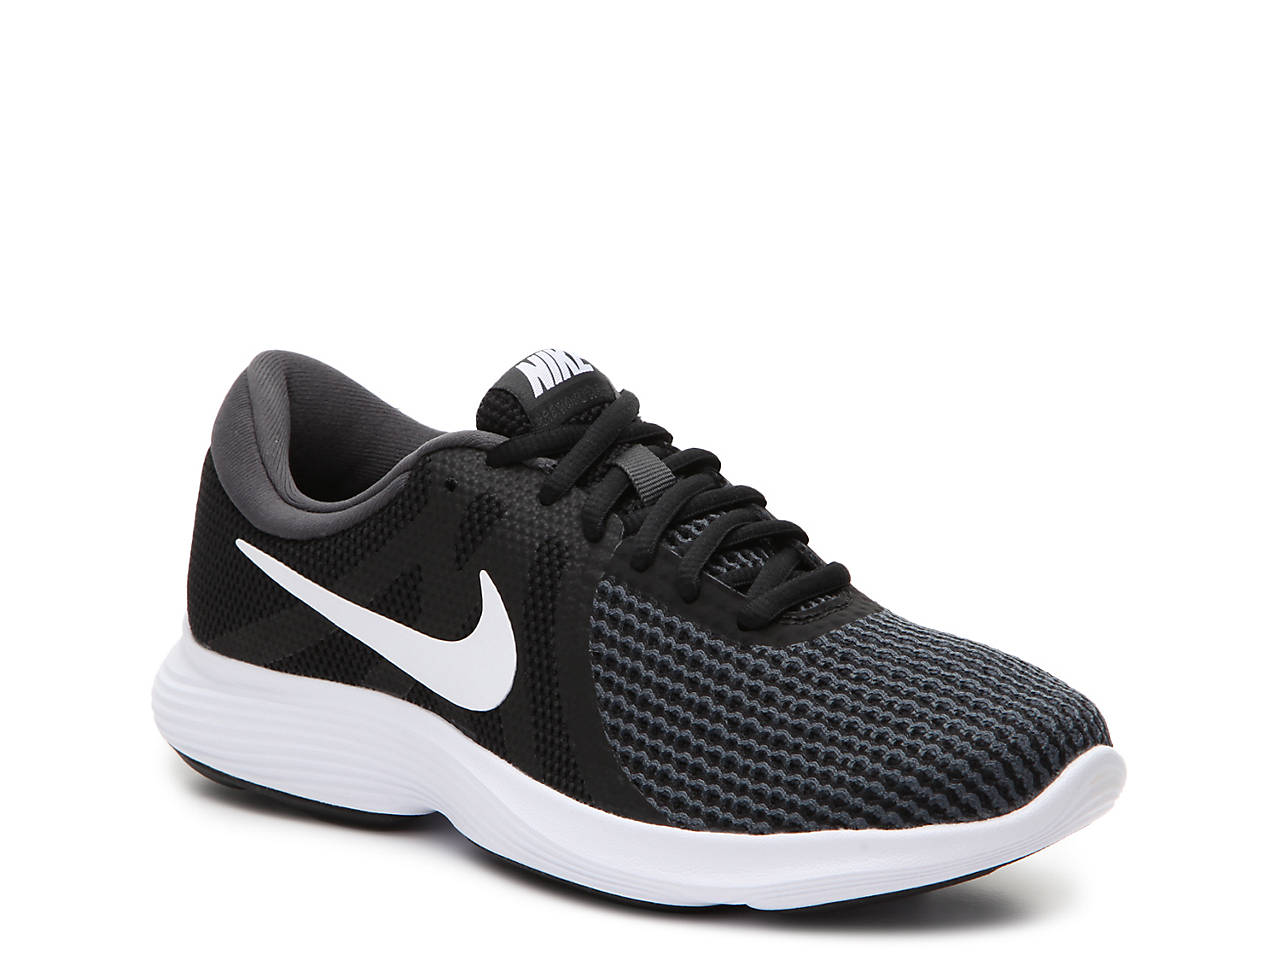 Nike Revolution 4 Lightweight Running Shoe - Women s Women s Shoes  e0568af66